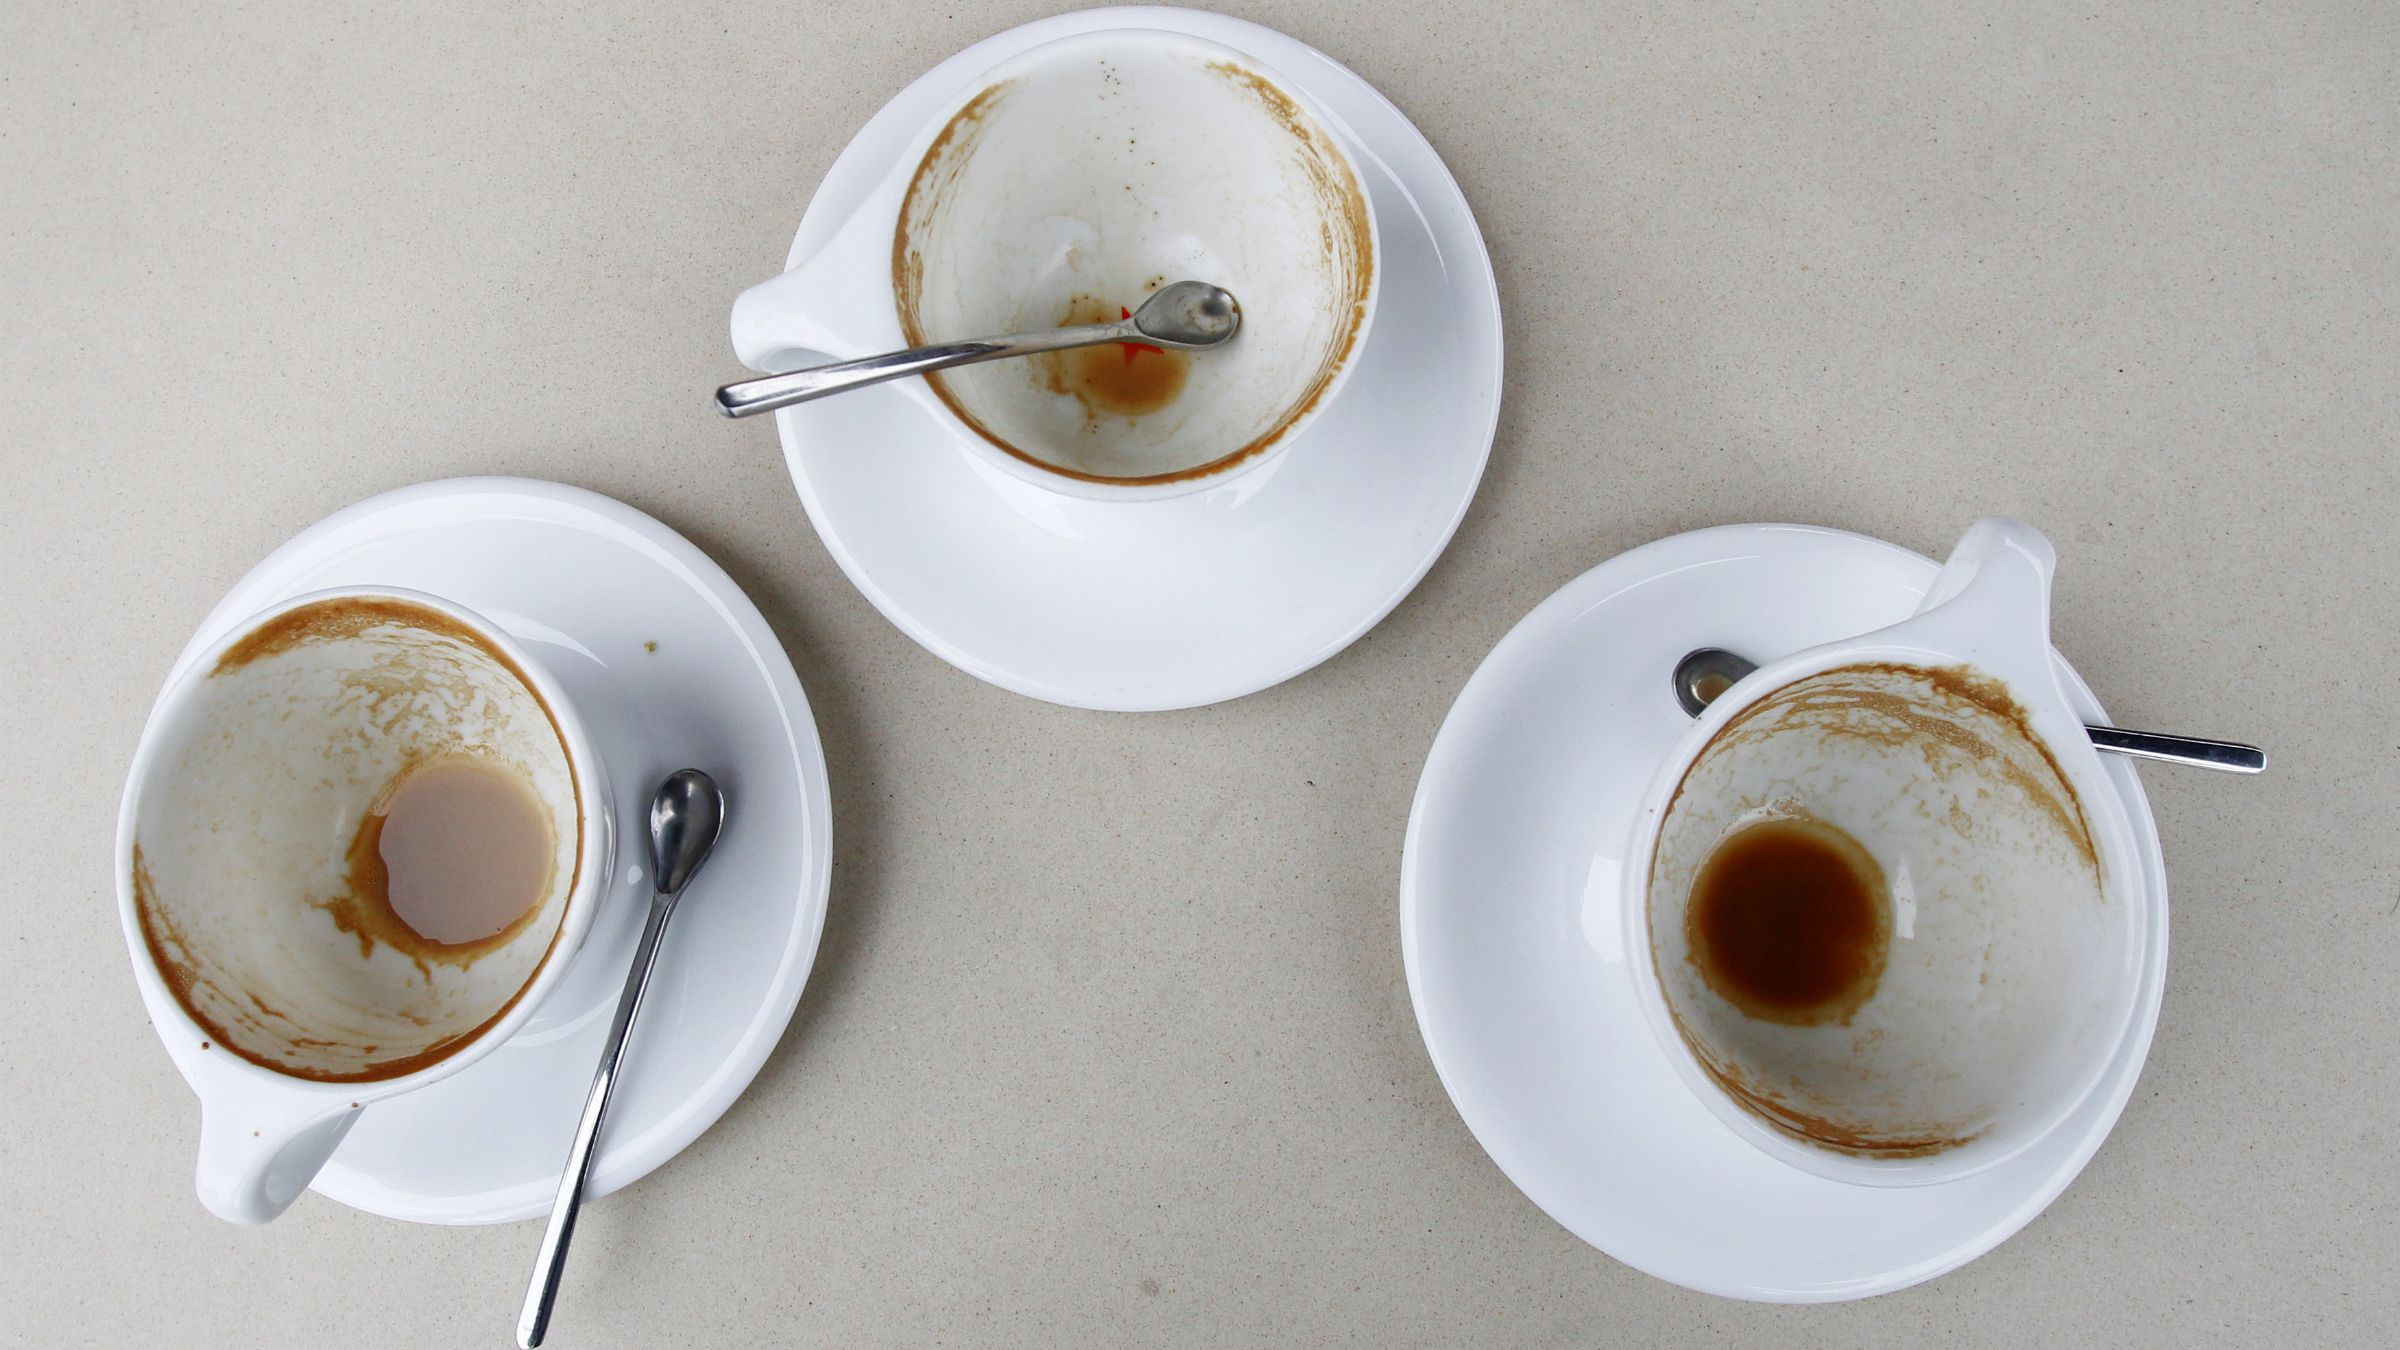 Three empty cups on a table are pictured at the Silver lake location of Intelligentsia Coffee and Tea in the Silver Lake area of Los Angeles October 19, 2010. REUTERS/Mario Anzuoni